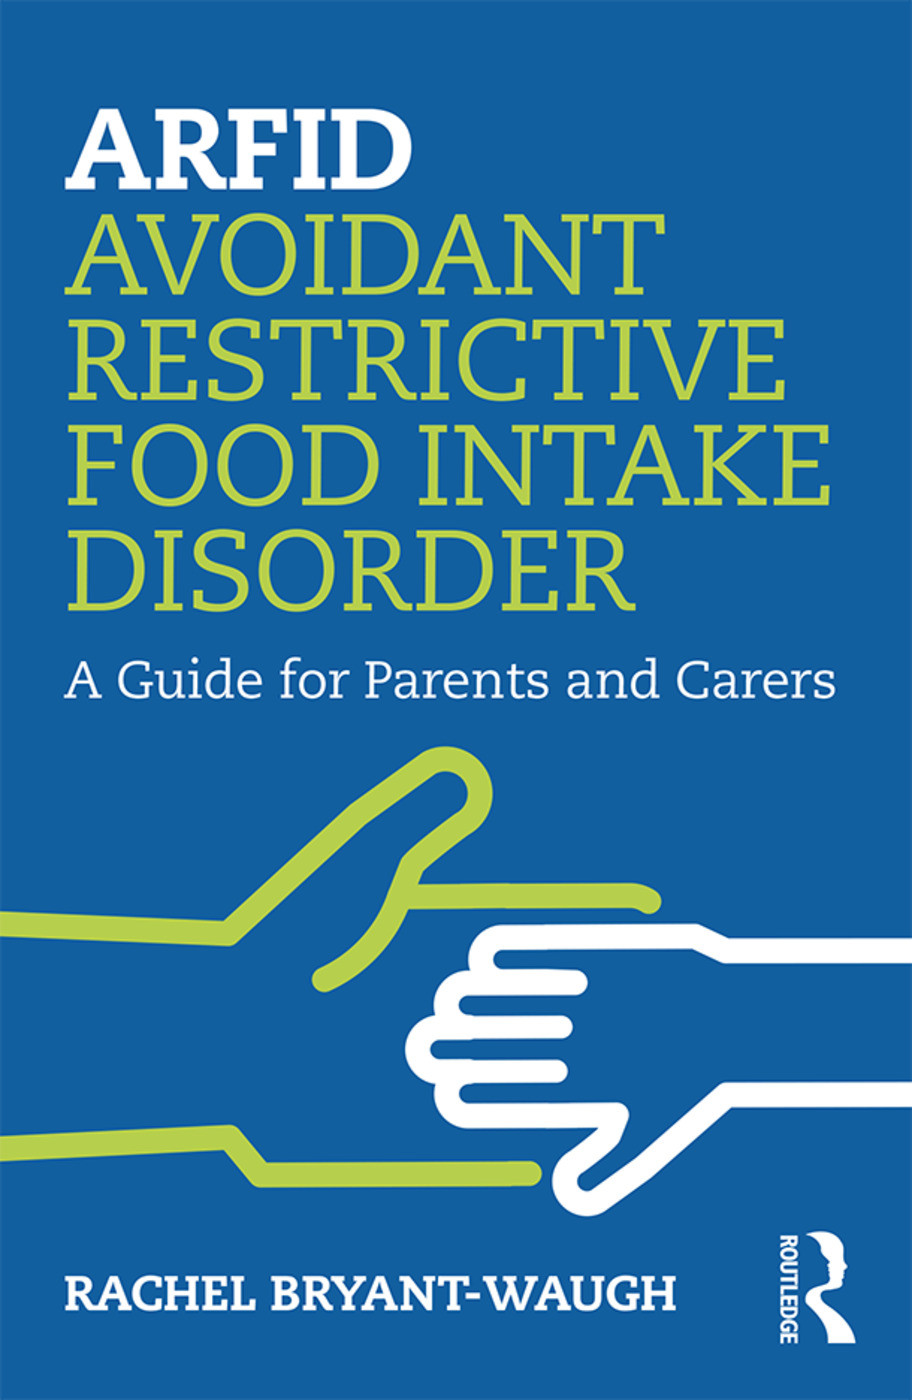 ARFID (Avoidant/Restrictive Food Intake Disorder): A Guide for Parents and Carers book cover